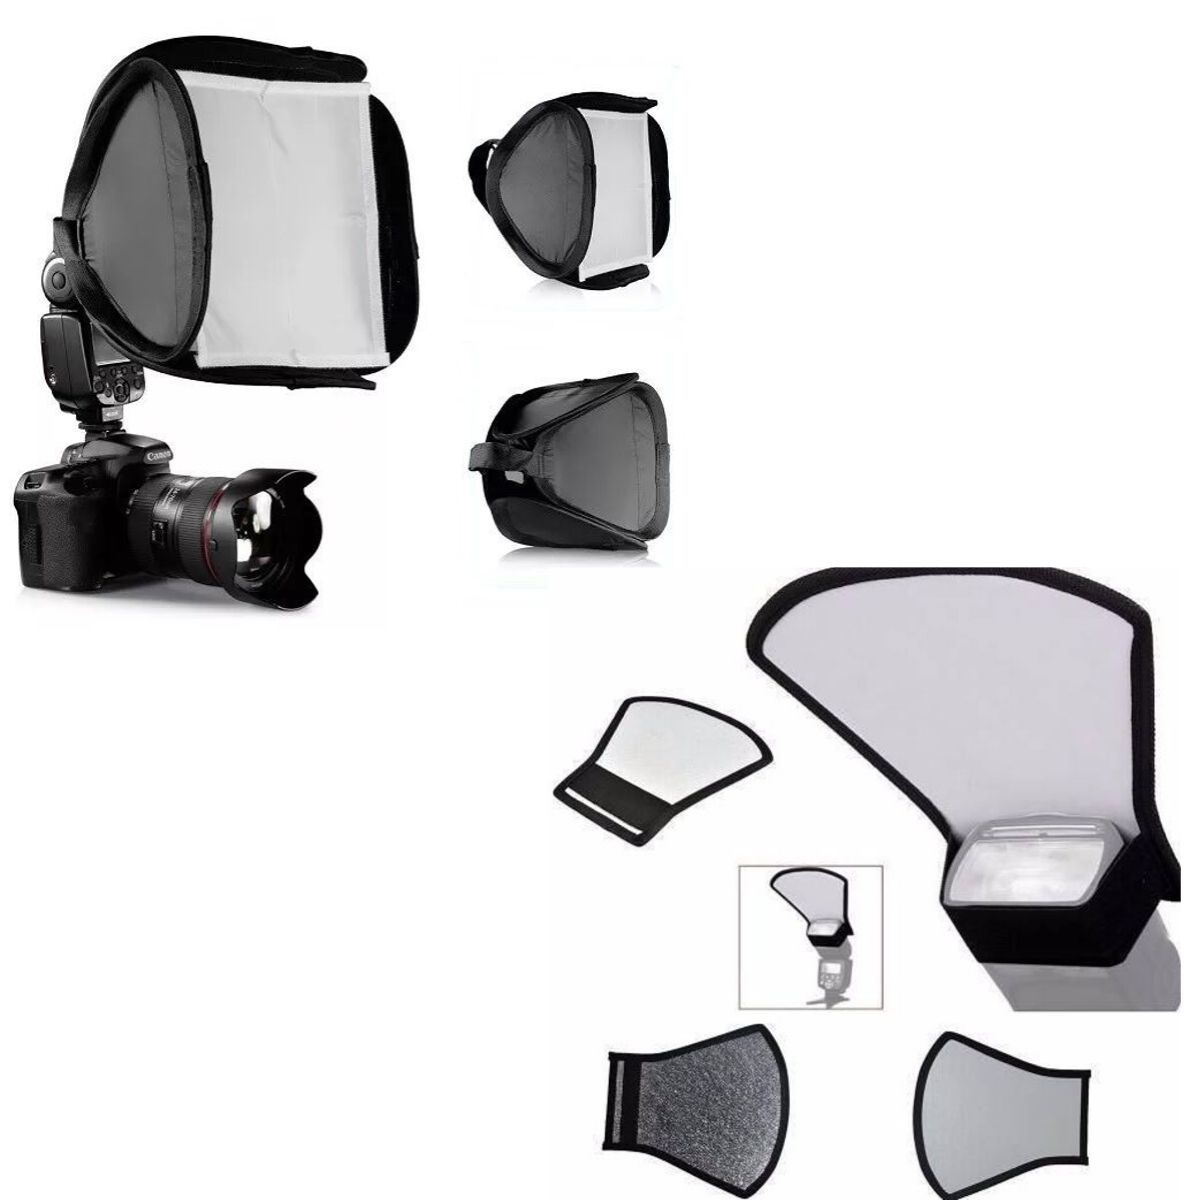 Kit 2x1 : Rebatedor 2 Lados + Mini Softbox Para Flash Speedlight 23x23cm